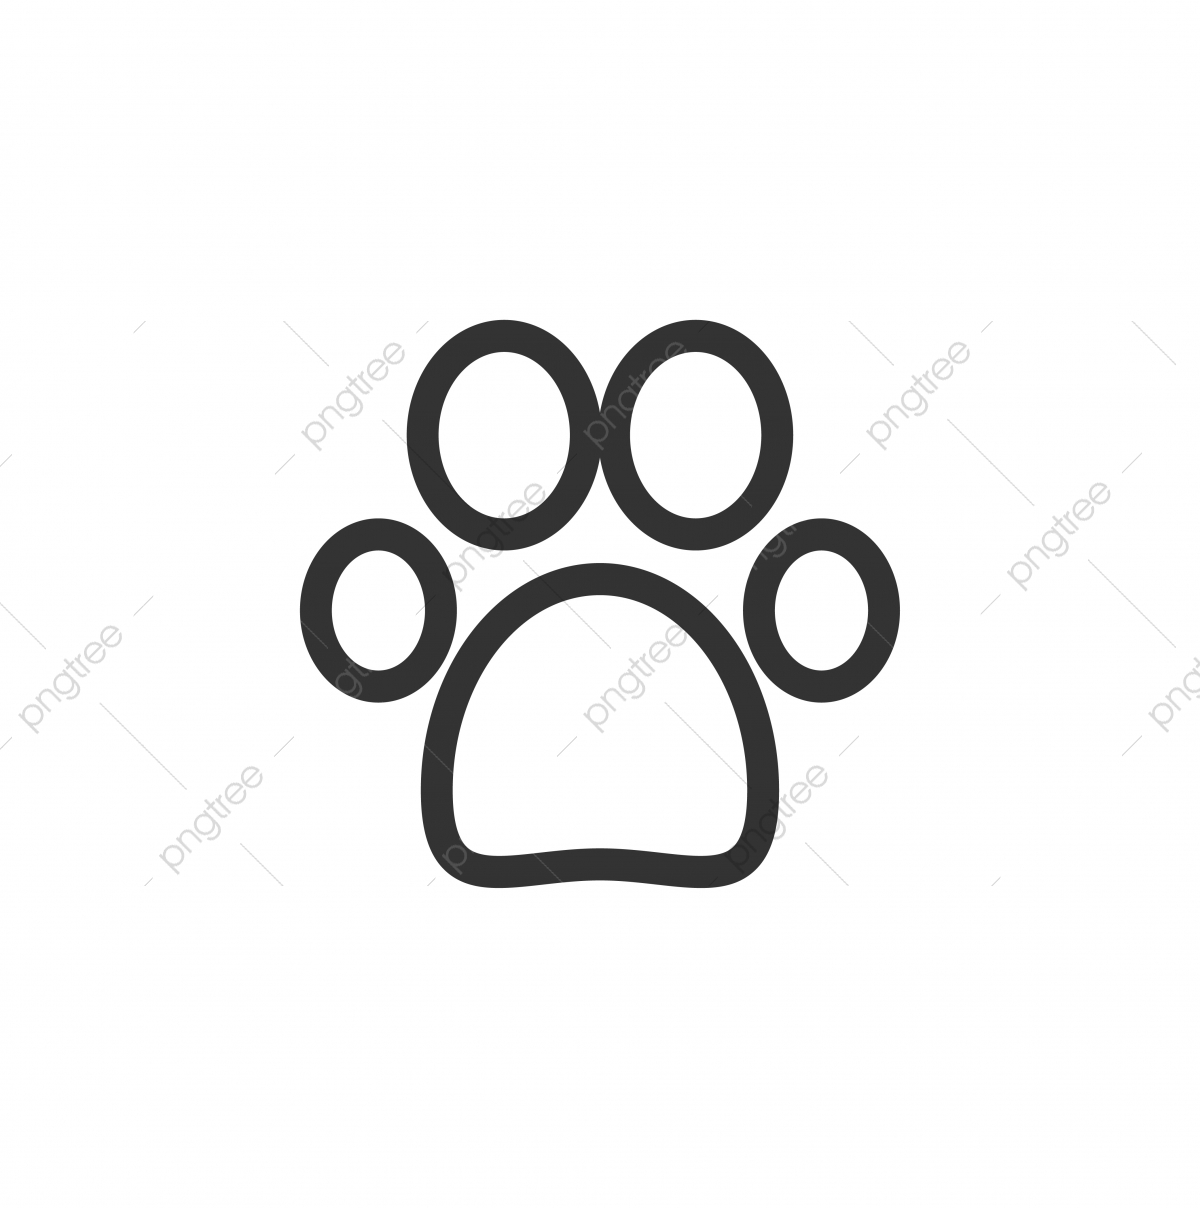 Paw Prints Png Images Vector And Psd Files Free Download On Pngtree All images is transparent background and free download. https pngtree com freepng paw print icon graphic design template vector 3985207 html